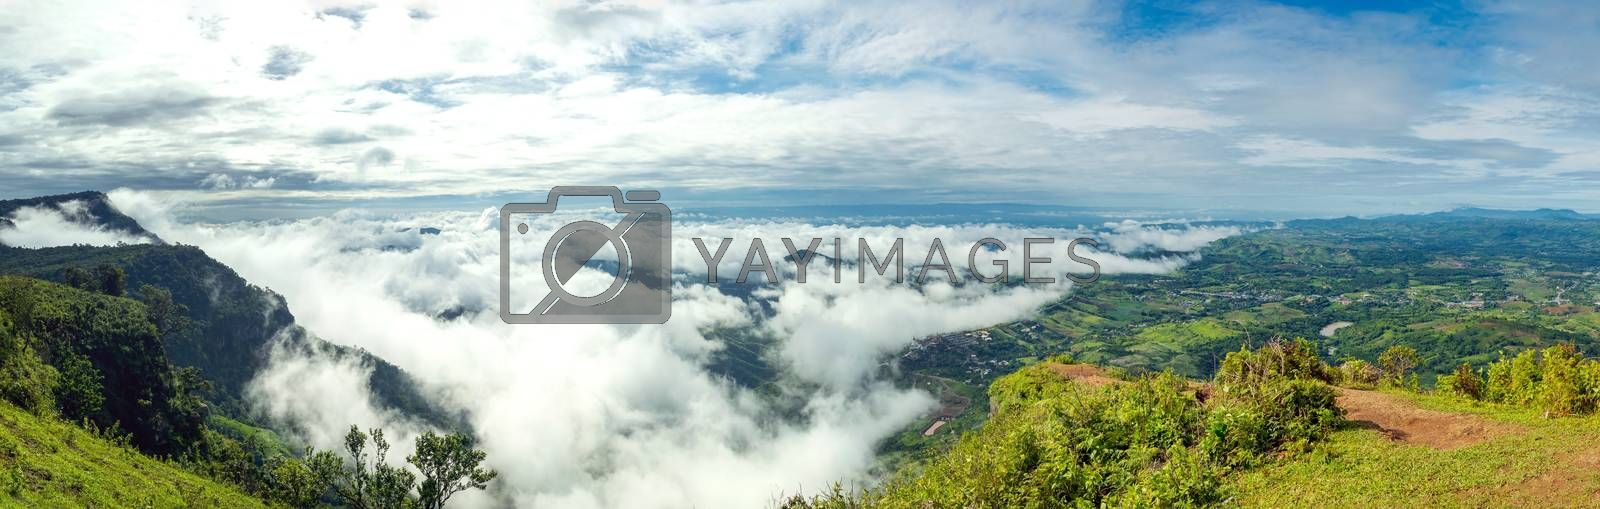 Panoramic view of the clouds covering the city taken from the highest point at the top of the mountain in Thailand.